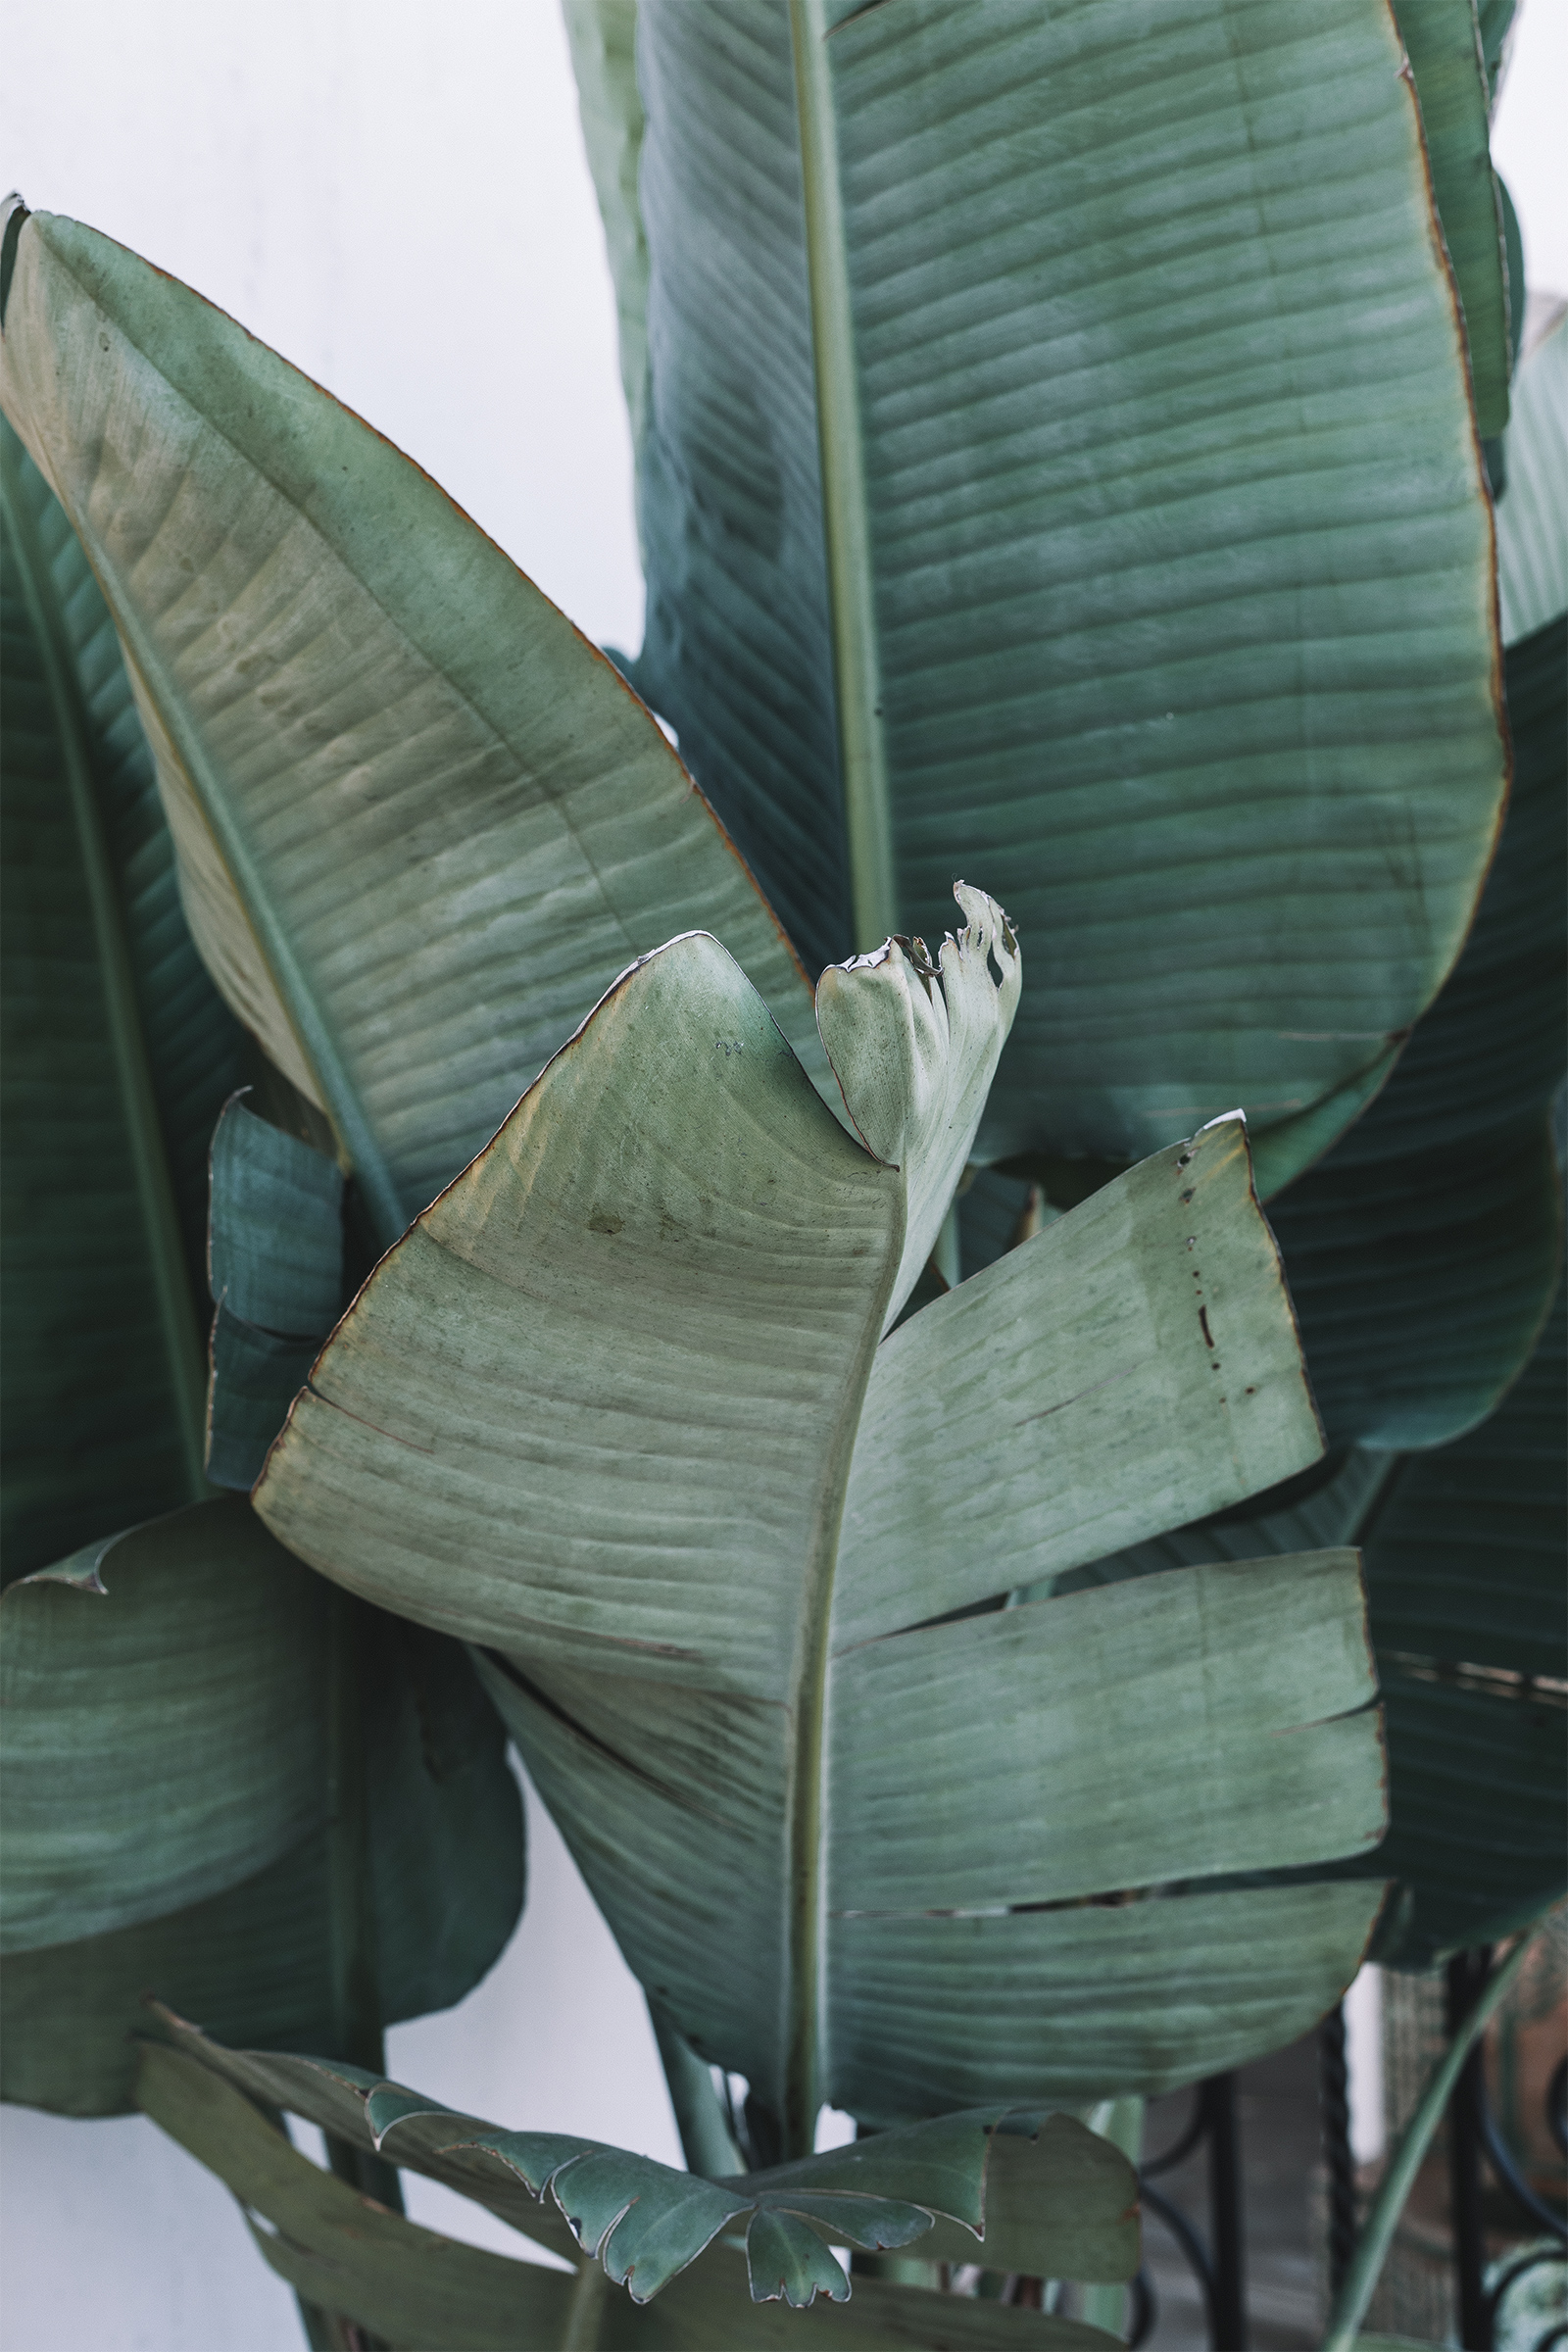 Tropical Palm Leaves / Texture / Nature Photography / Kelly Fiance Creative